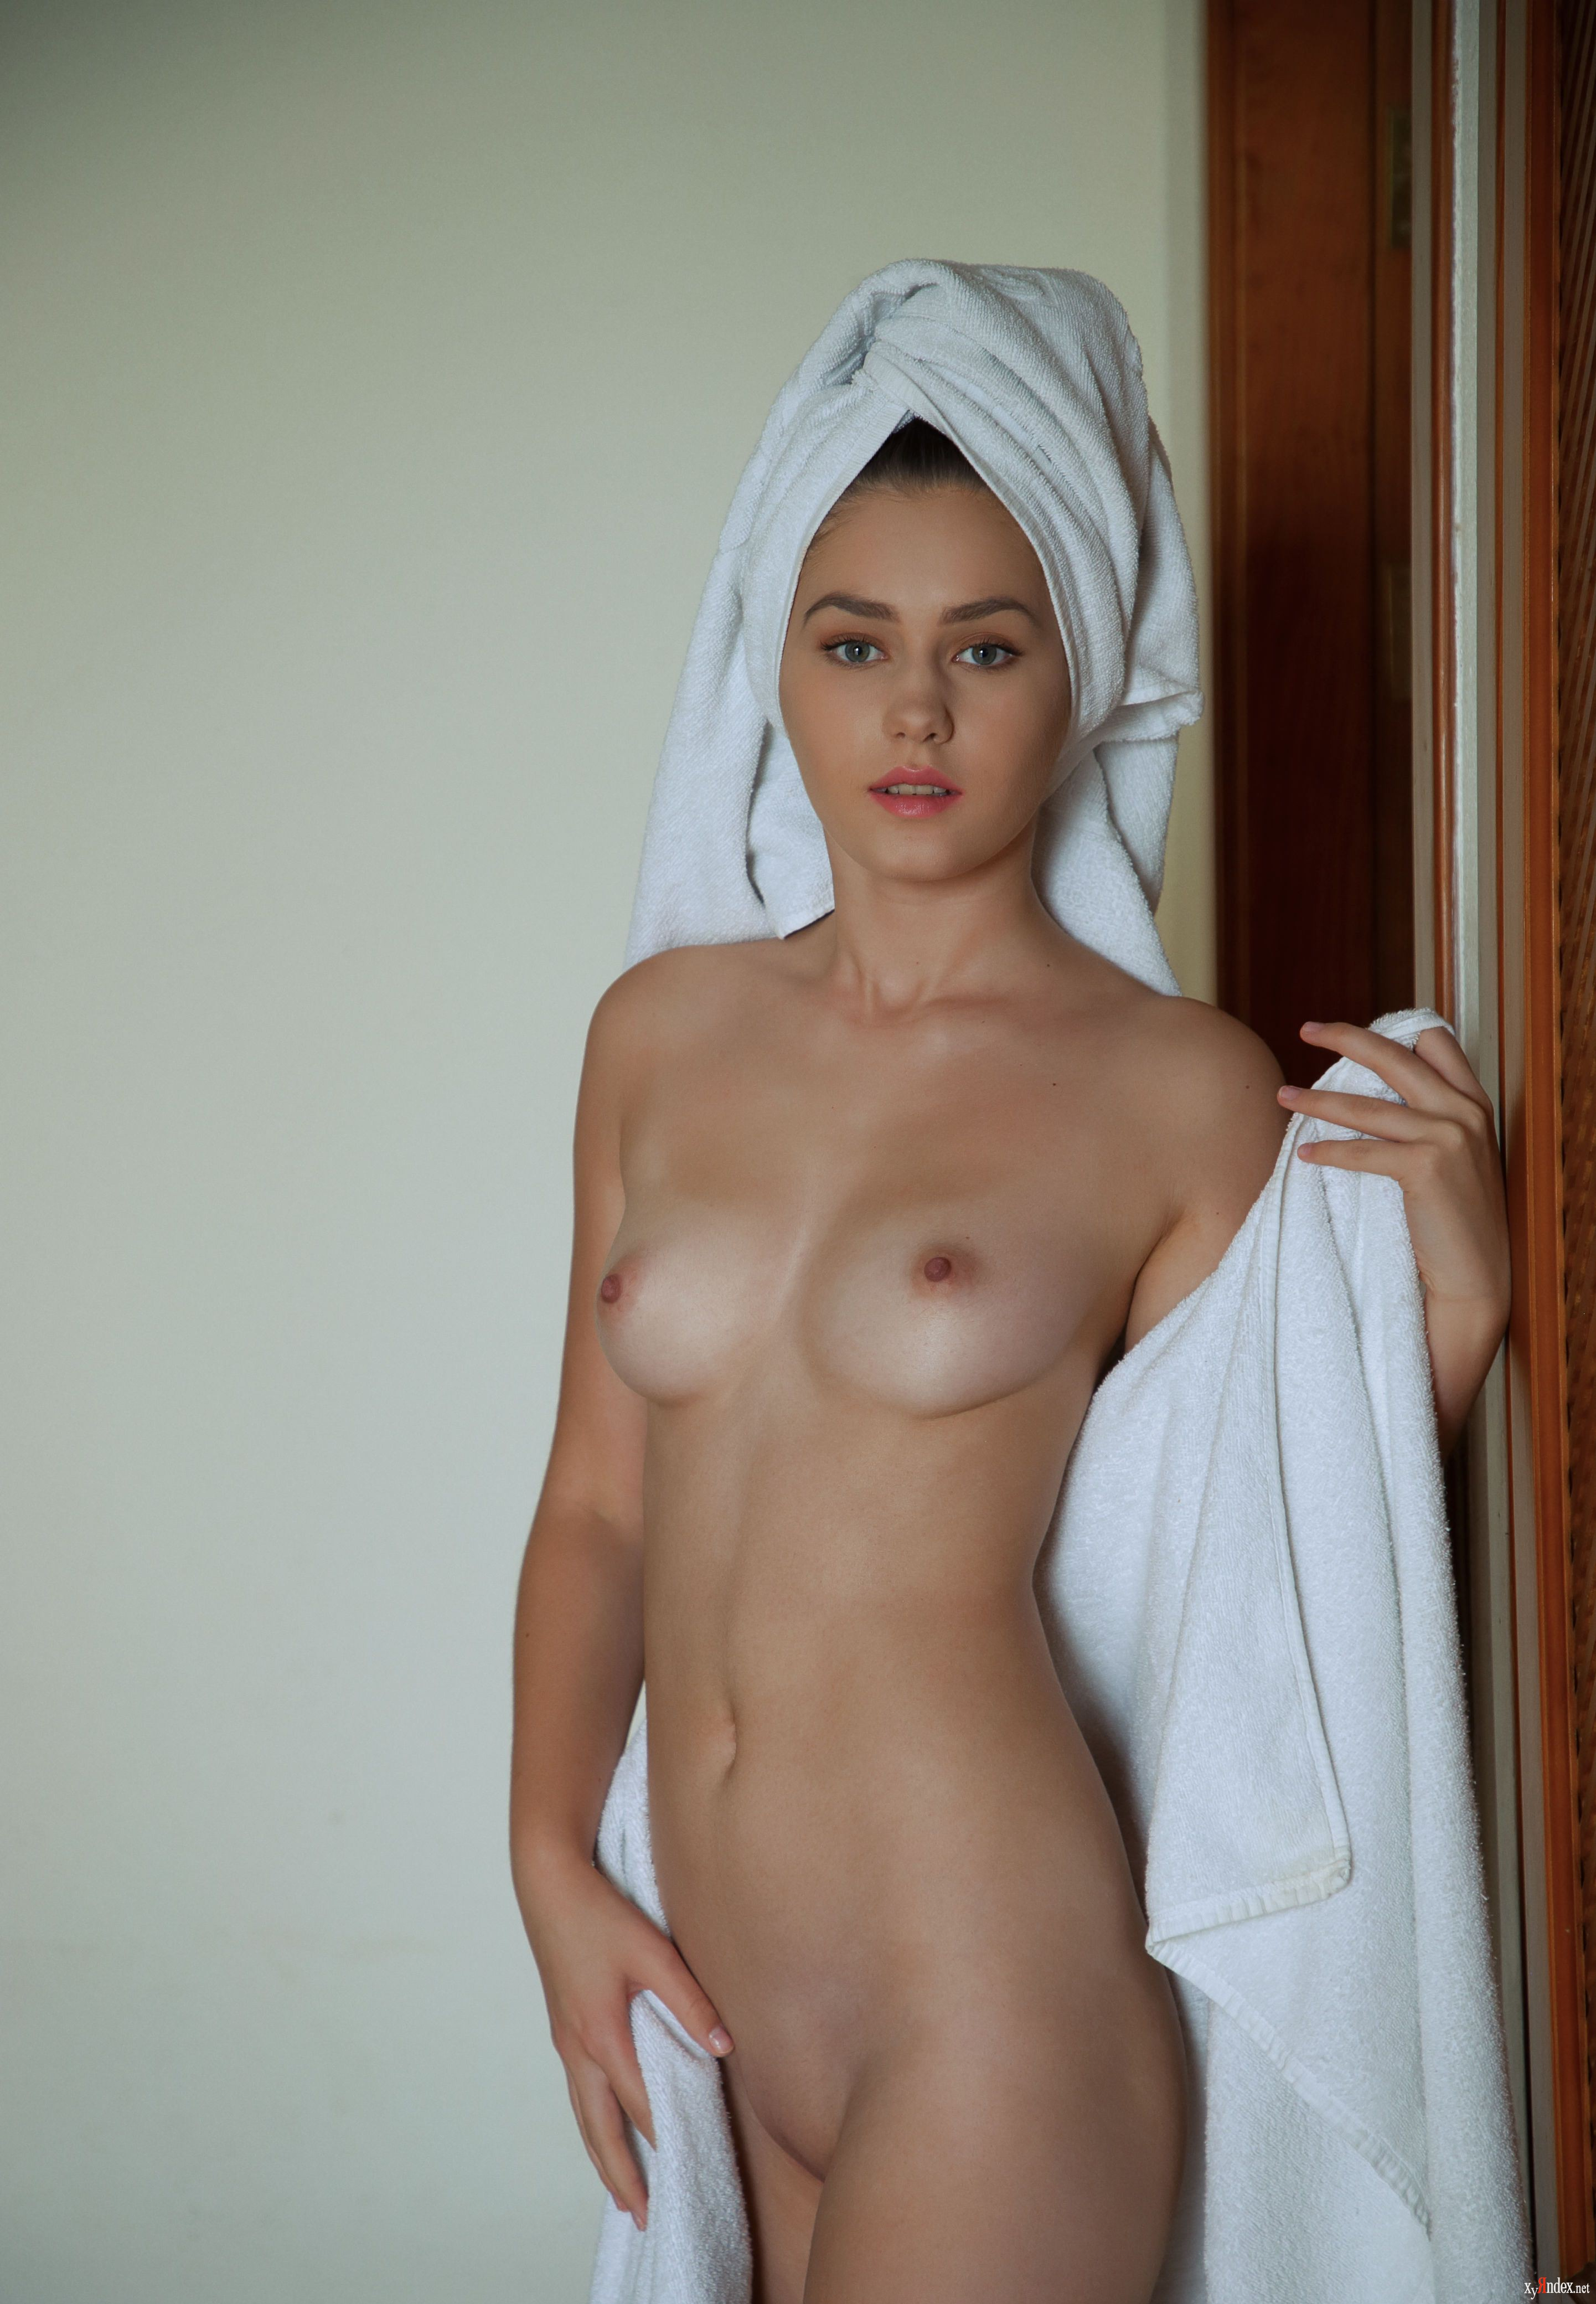 Beautiful nude sexy lady in elegant pose beach towel for sale by galina tcivina